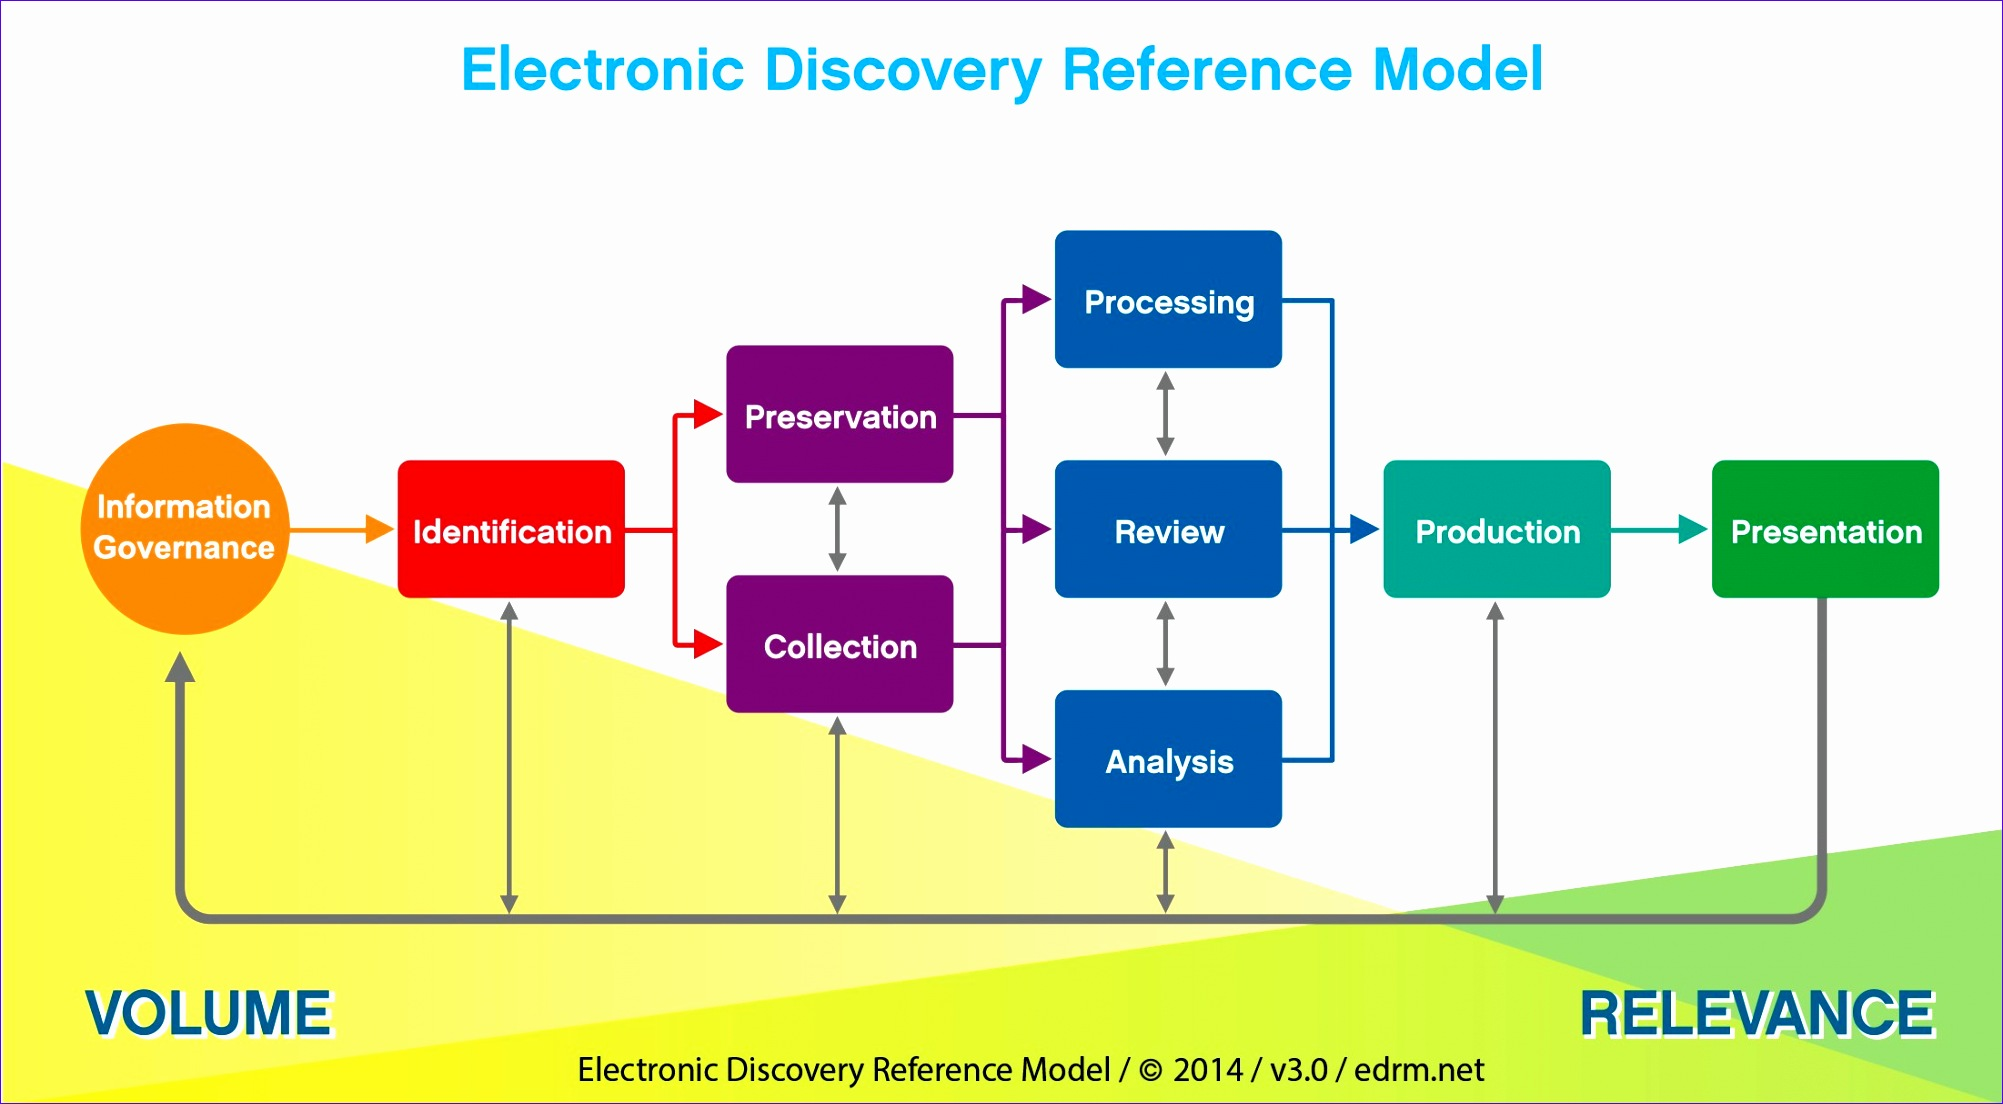 duke law acquires electronic discovery reference model 20031104